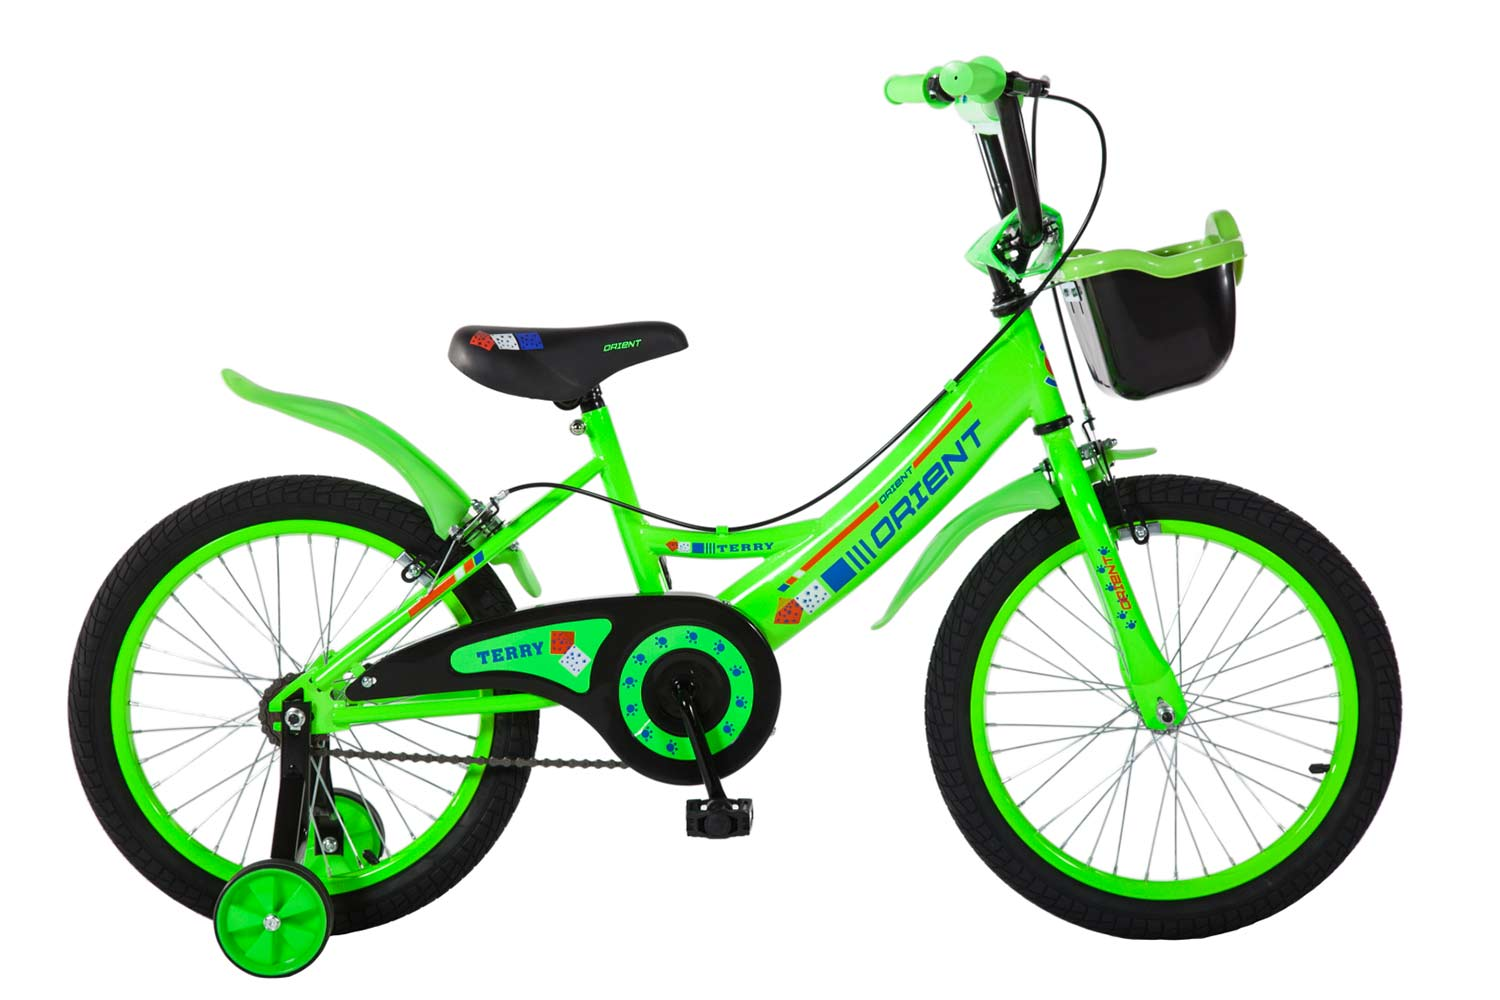 TERRY 18″ bike image